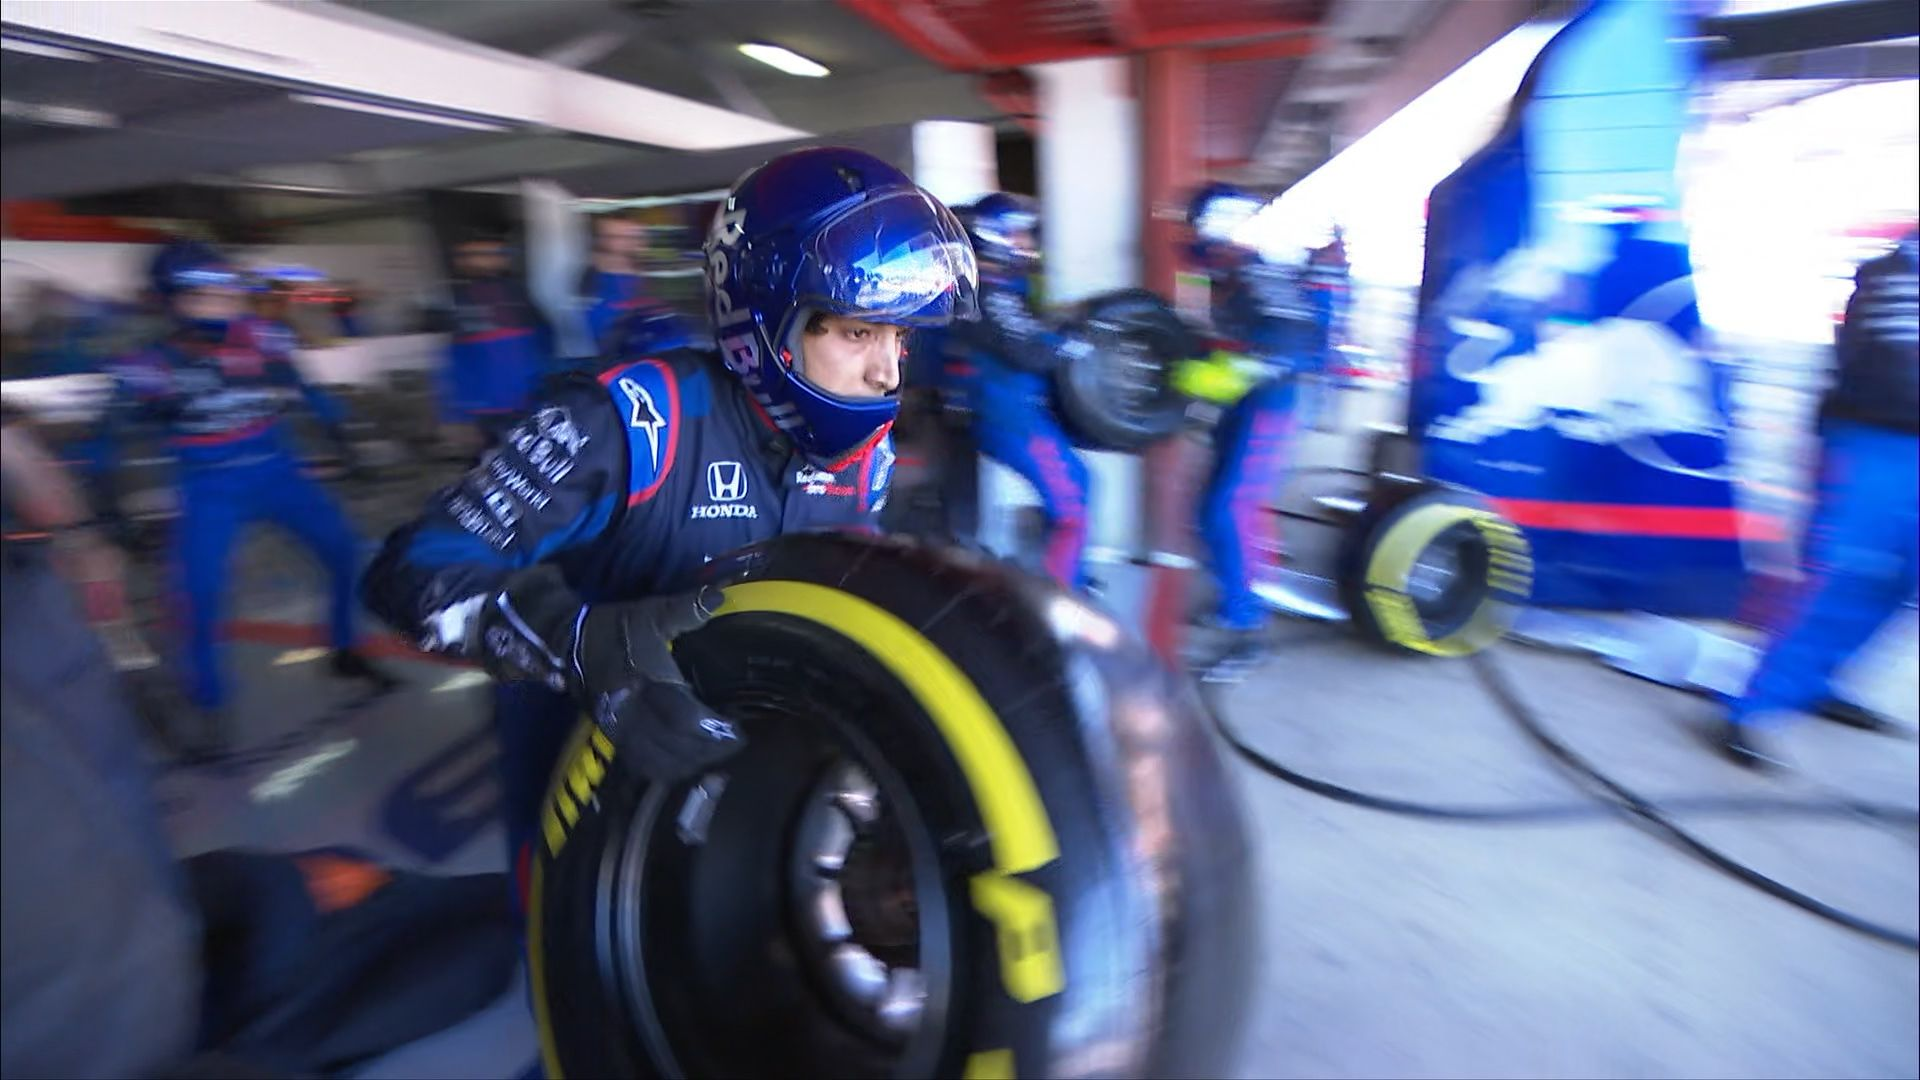 SPANISH GP: Kvyat catches Toro Rosso pit crew by surprise